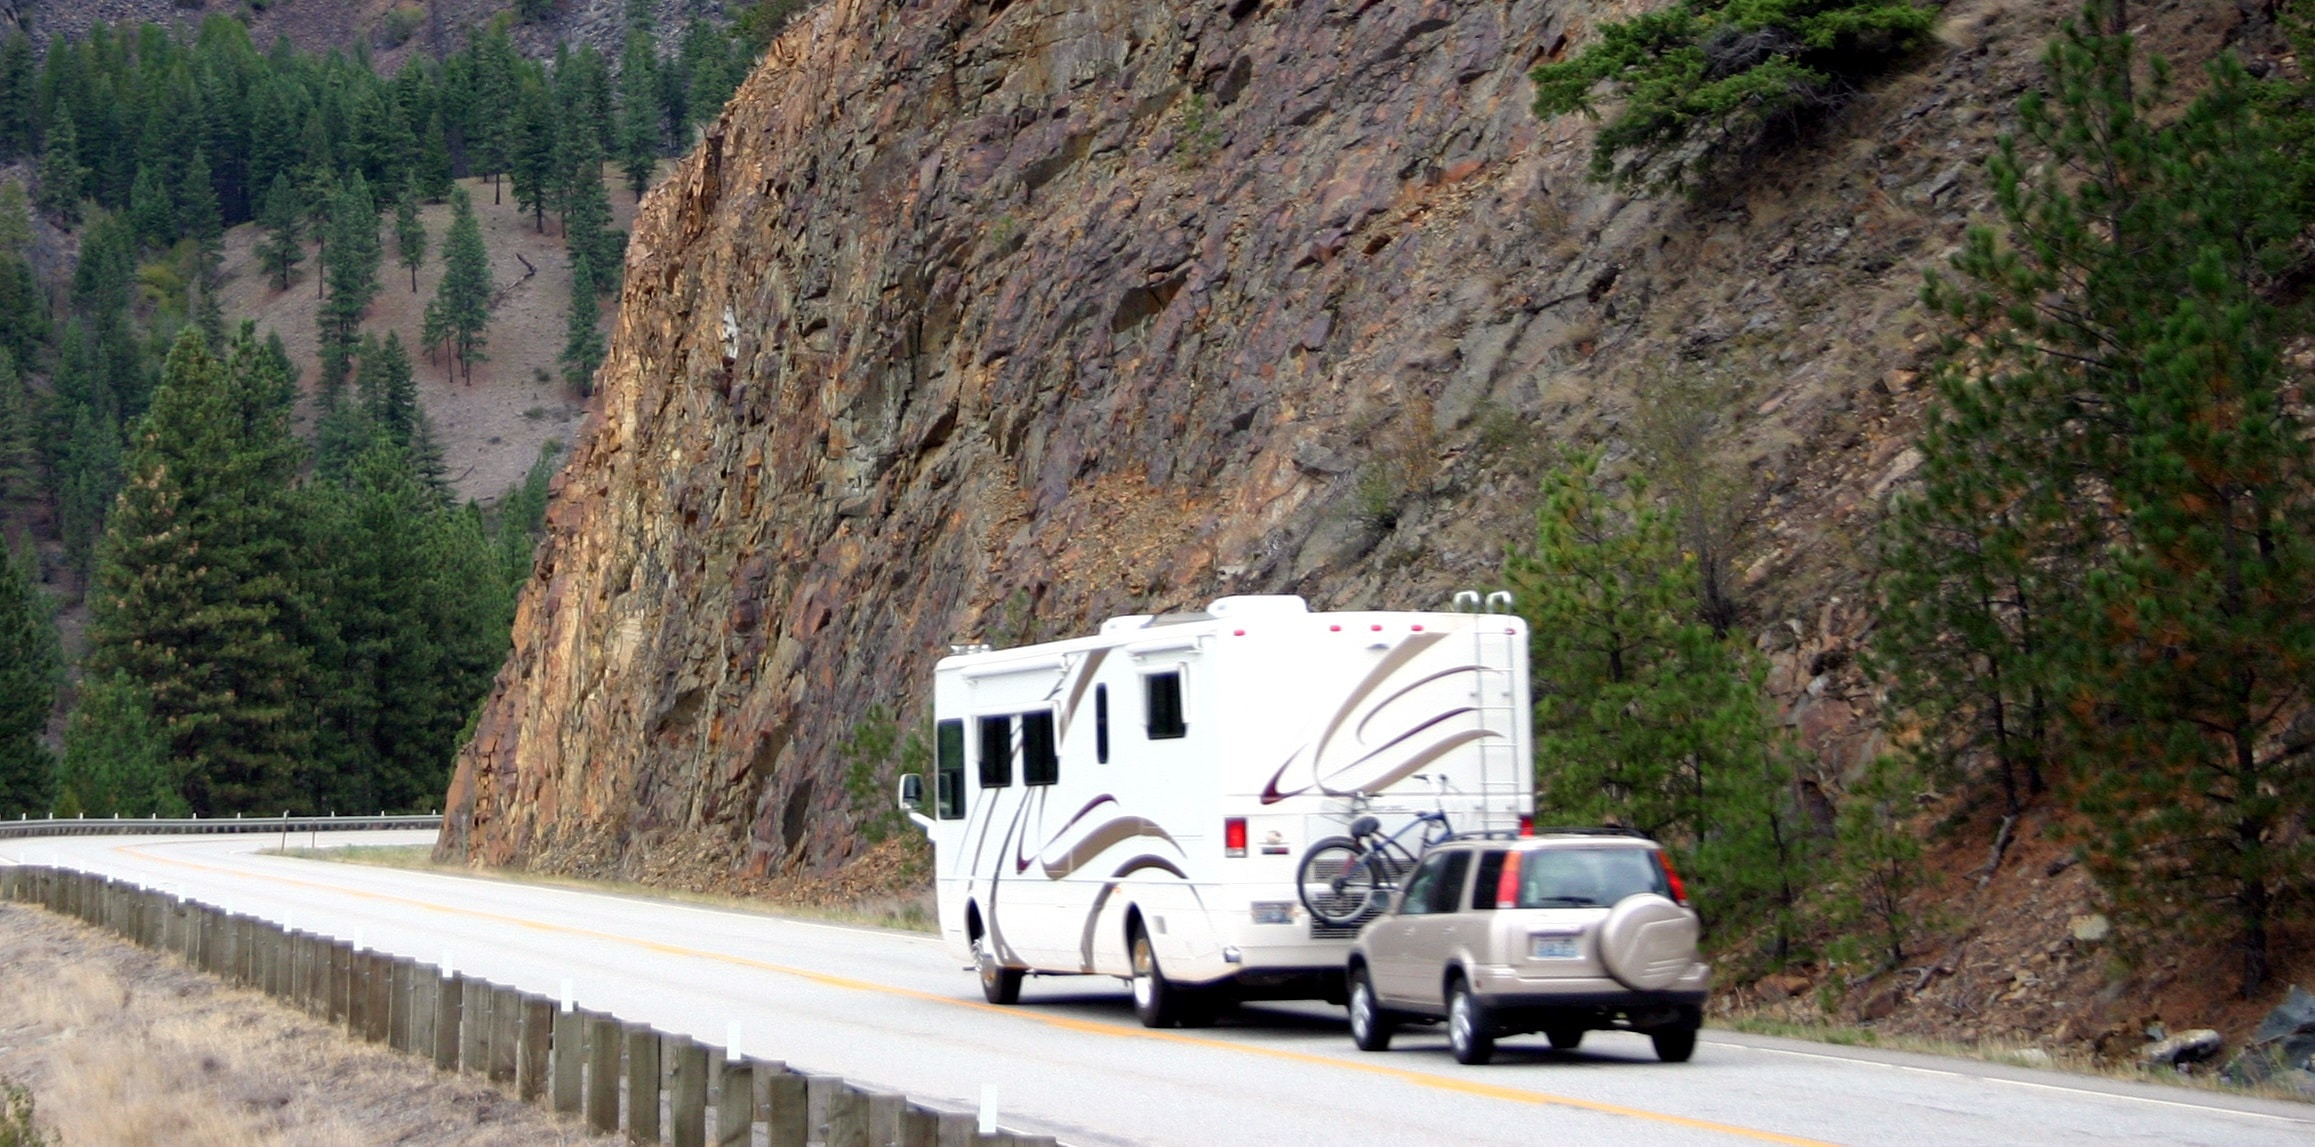 An RV driving along a road carved into a mountainside.